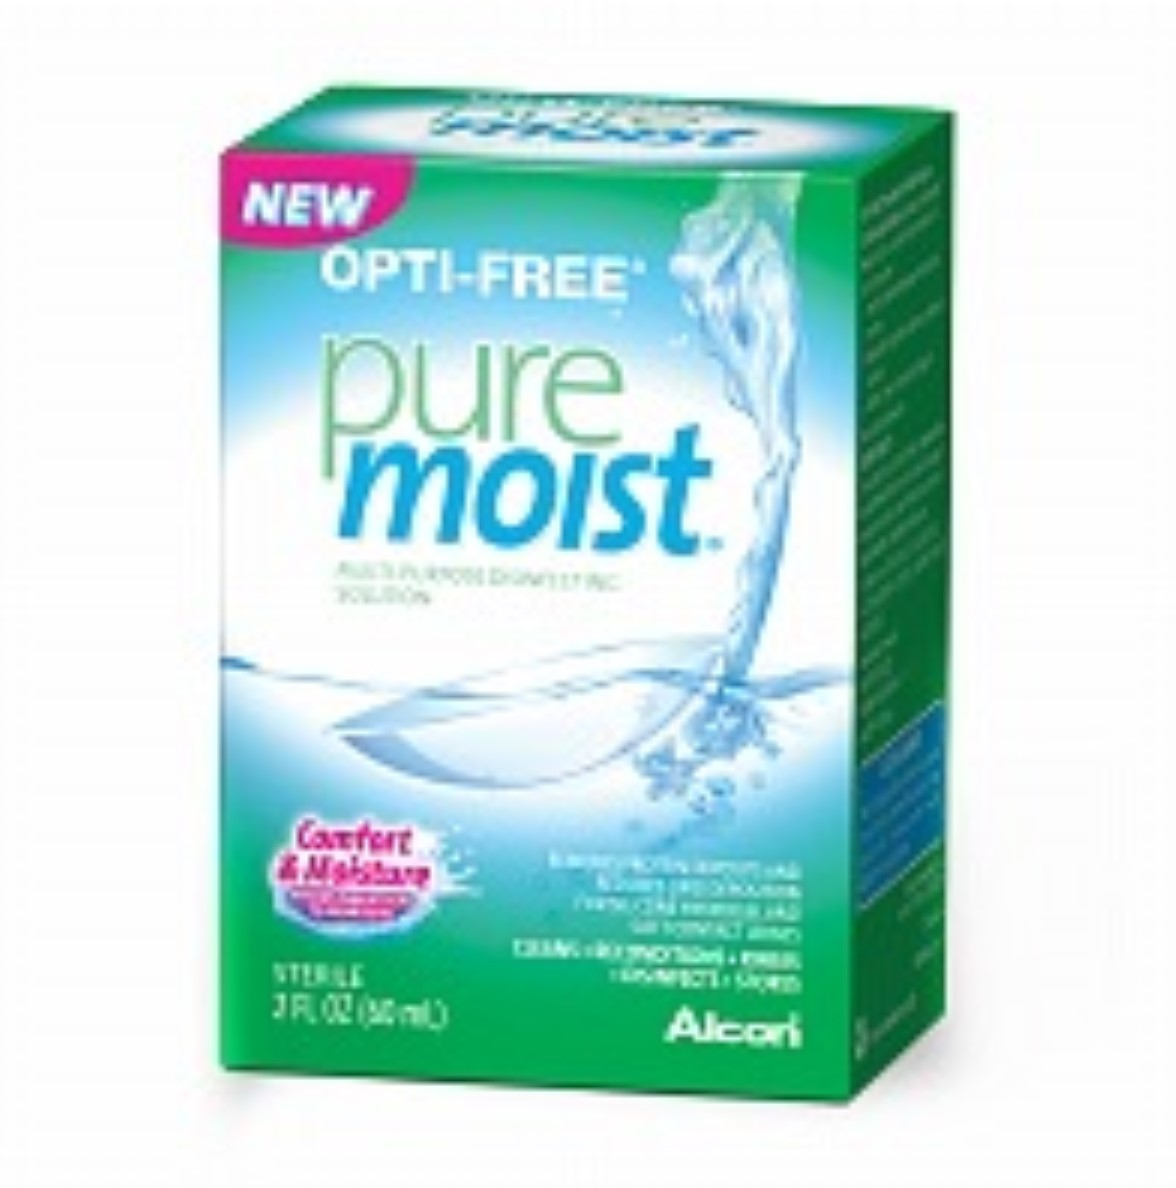 OPTI-FREE Pure Moist Multi-Purpose Disinfecting Solution 2 oz (Pack of 2)